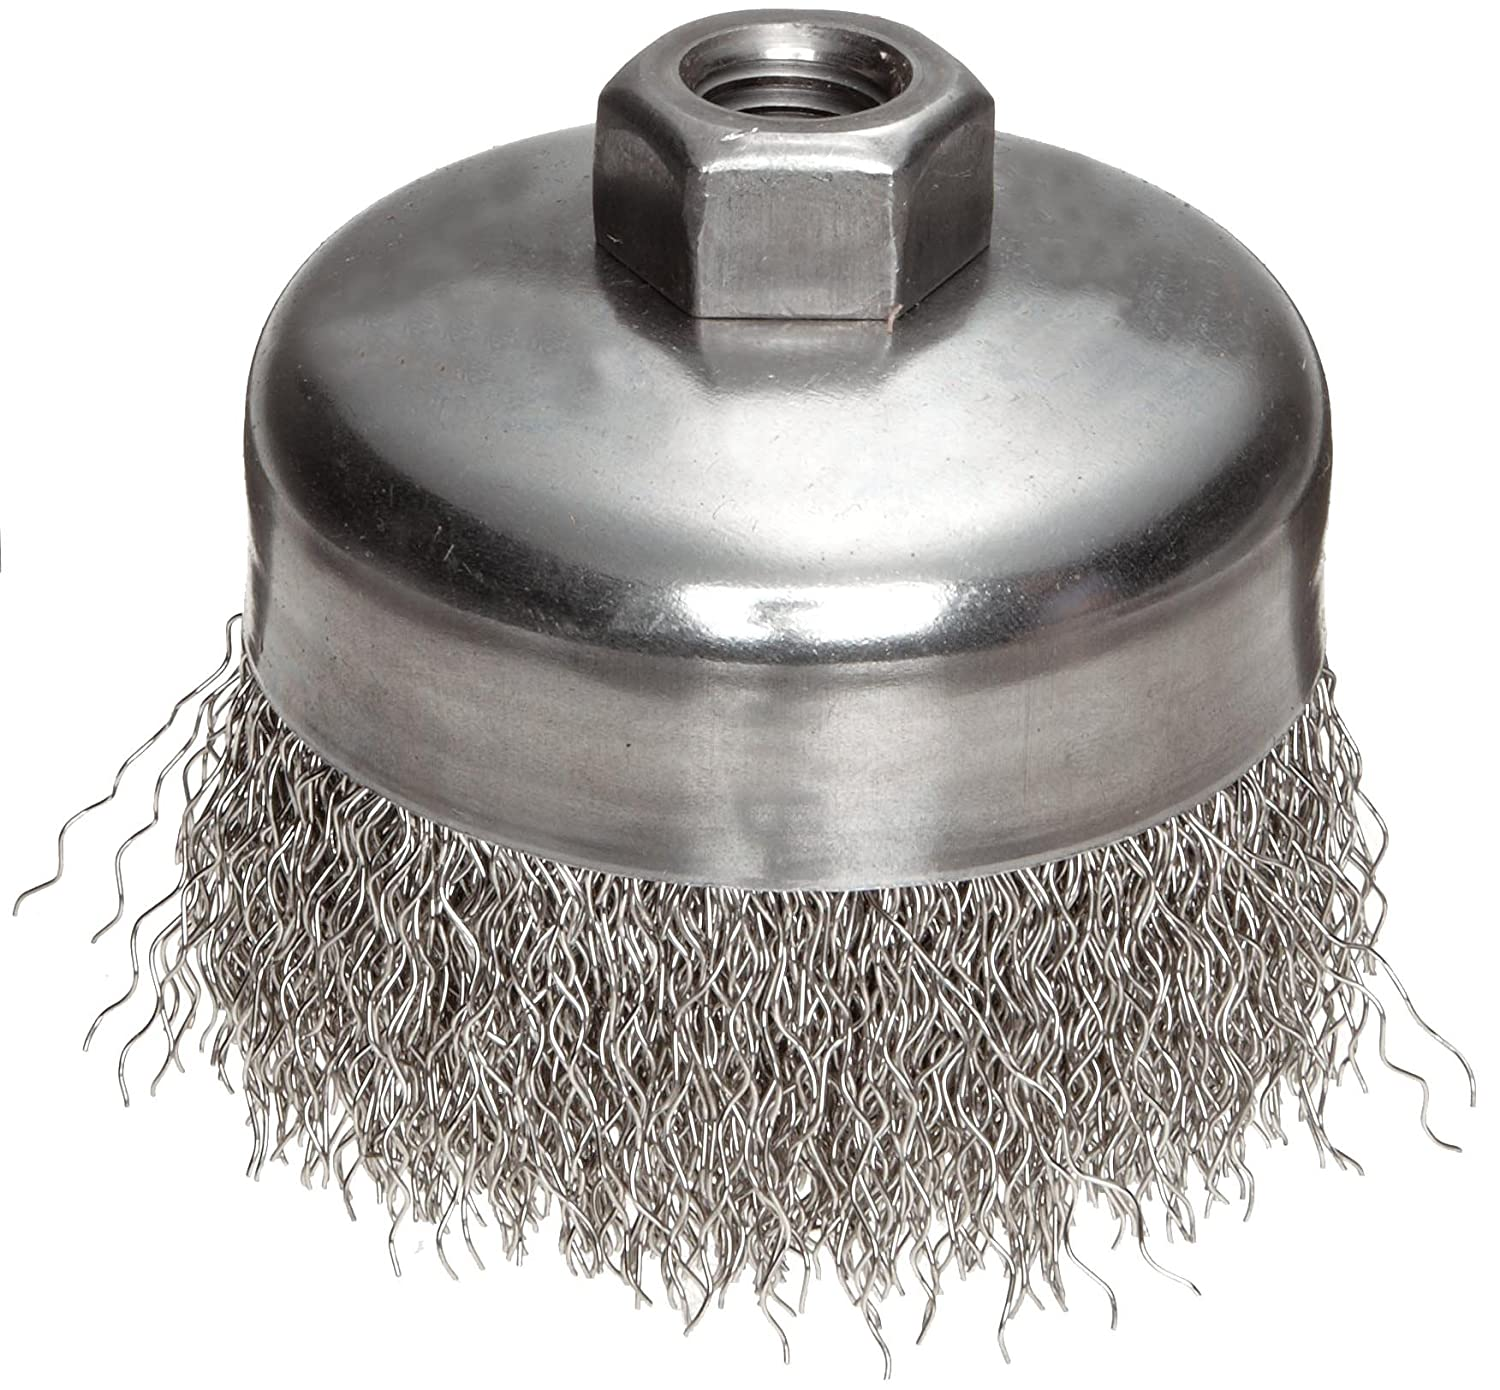 5//8-11 Arbor 5 Diameter 0.02 Wire Diameter 5//8-11 Arbor 1-1//4 Bristle Length Weiler Corporation 14216 Threaded Hole 8000 rpm Pack of 1 0.02 Wire Diameter Crimped Wire 1-1//4 Bristle Length 5 Diameter Steel Weiler Wire Cup Brush